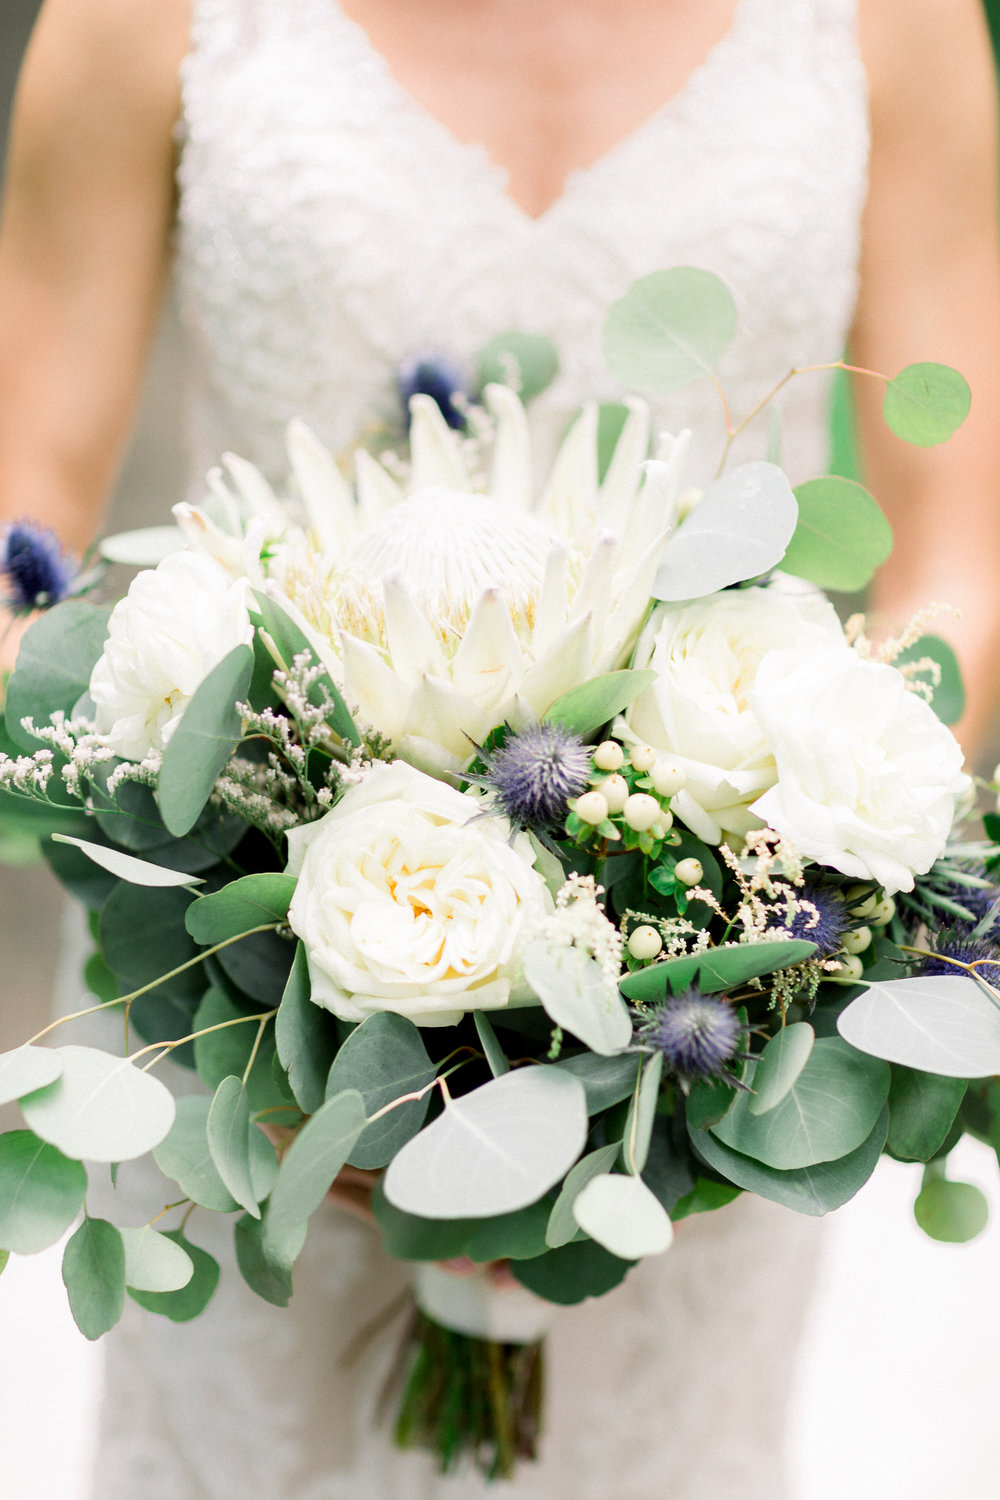 King protea wedding bouquet with greenery for Pittsburgh wedding planned by Exhale Events. Find more wedding inspiration at exhale-events.com!